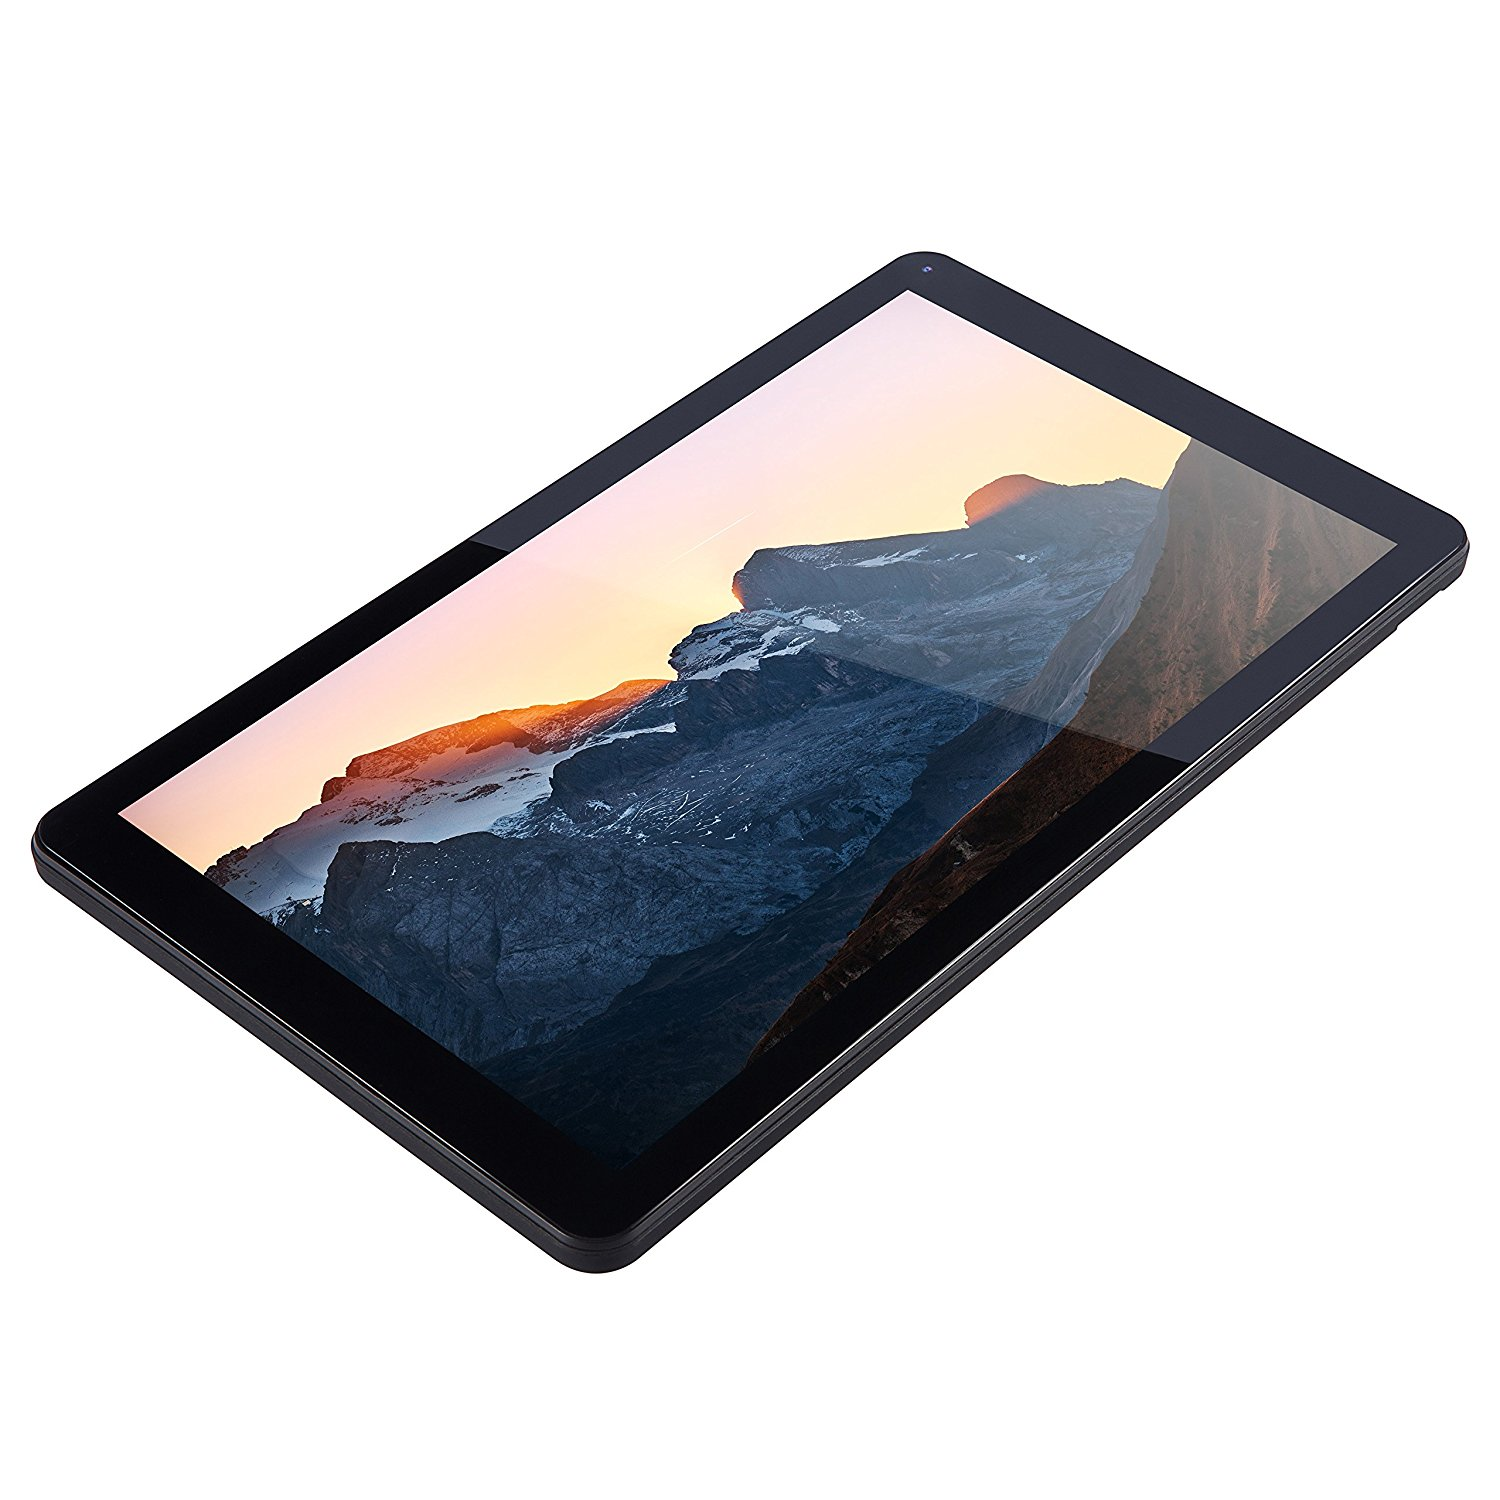 NeuTab 10 Inch Android Tablet Quad Core